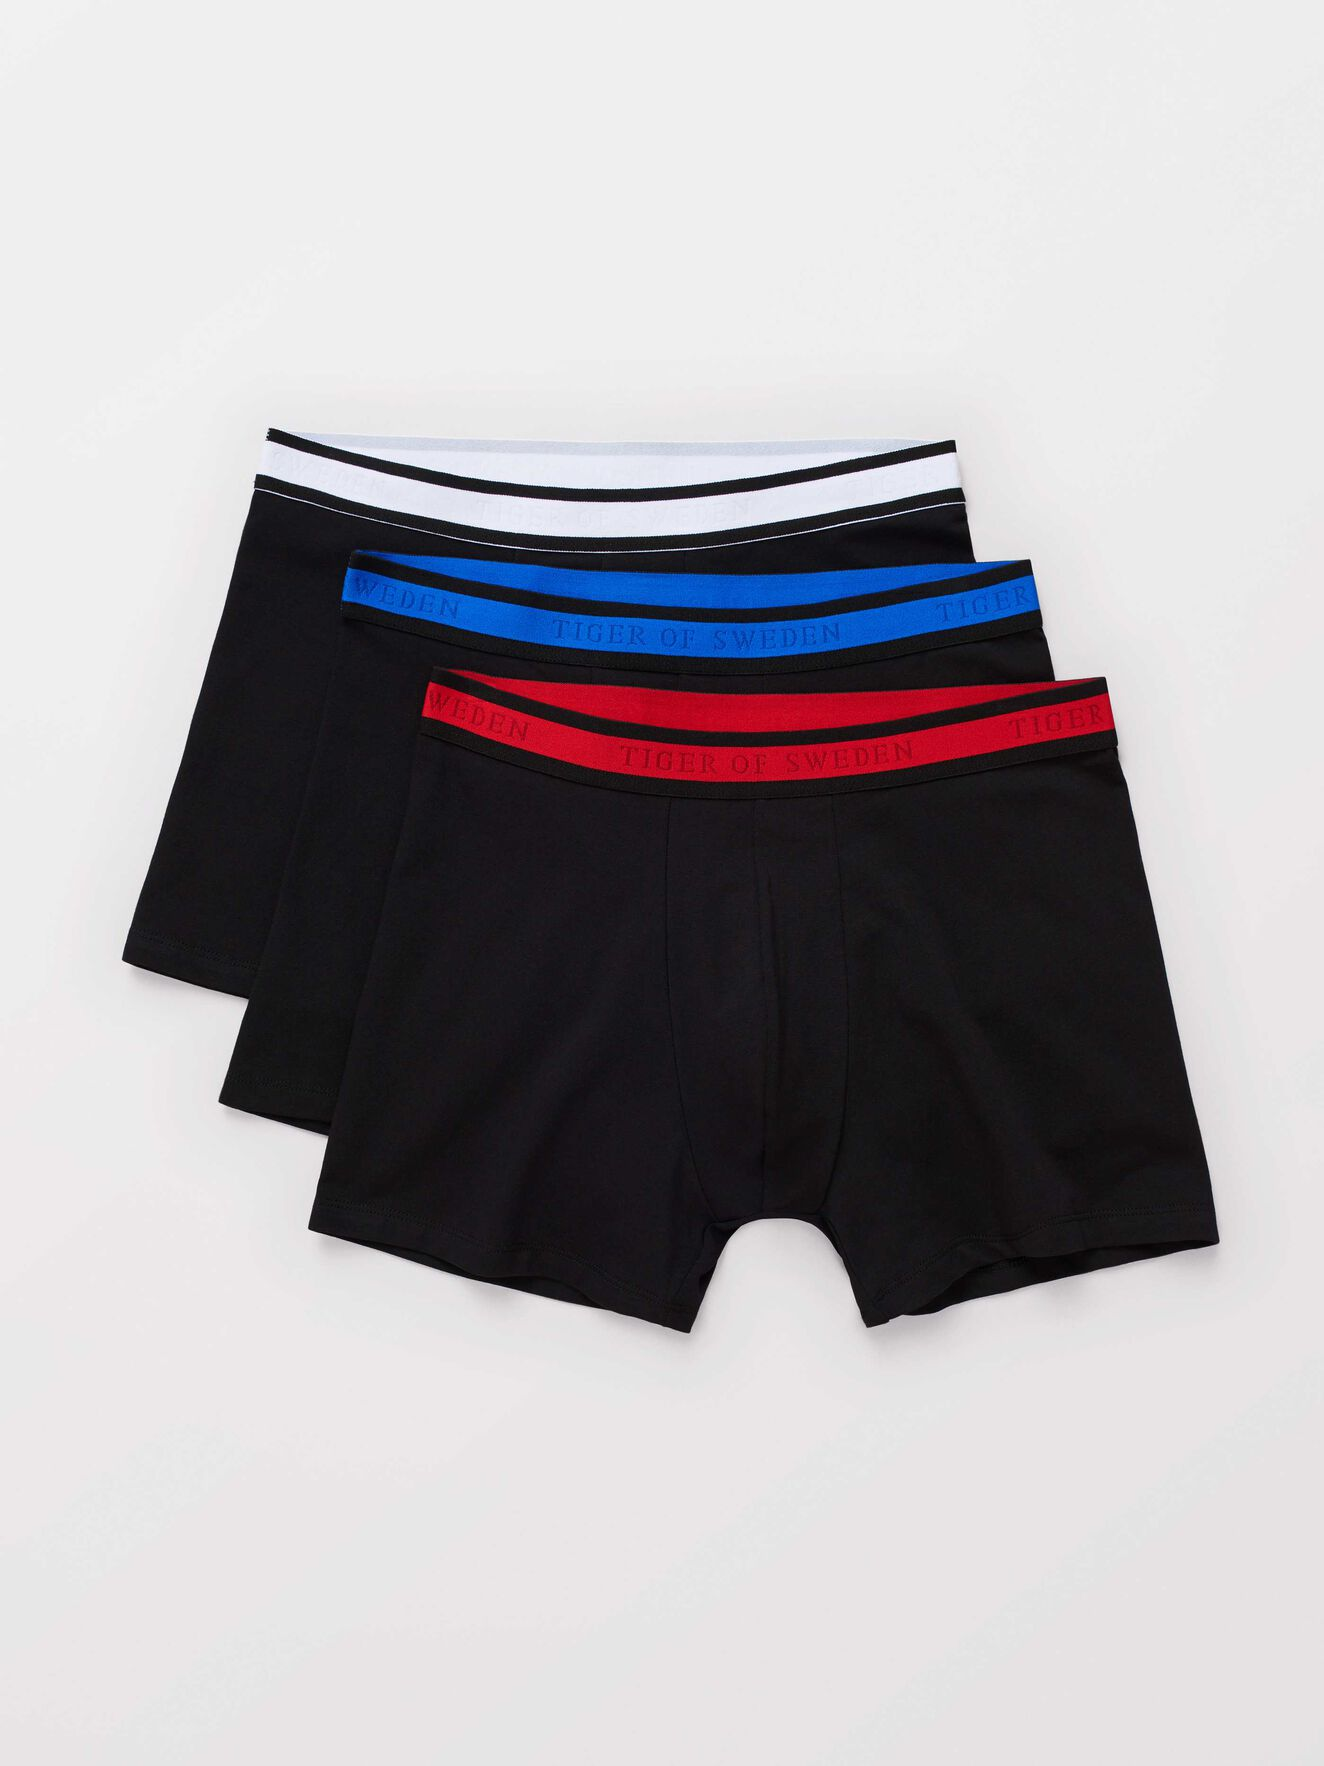 Ohlson Boxers in Black from Tiger of Sweden